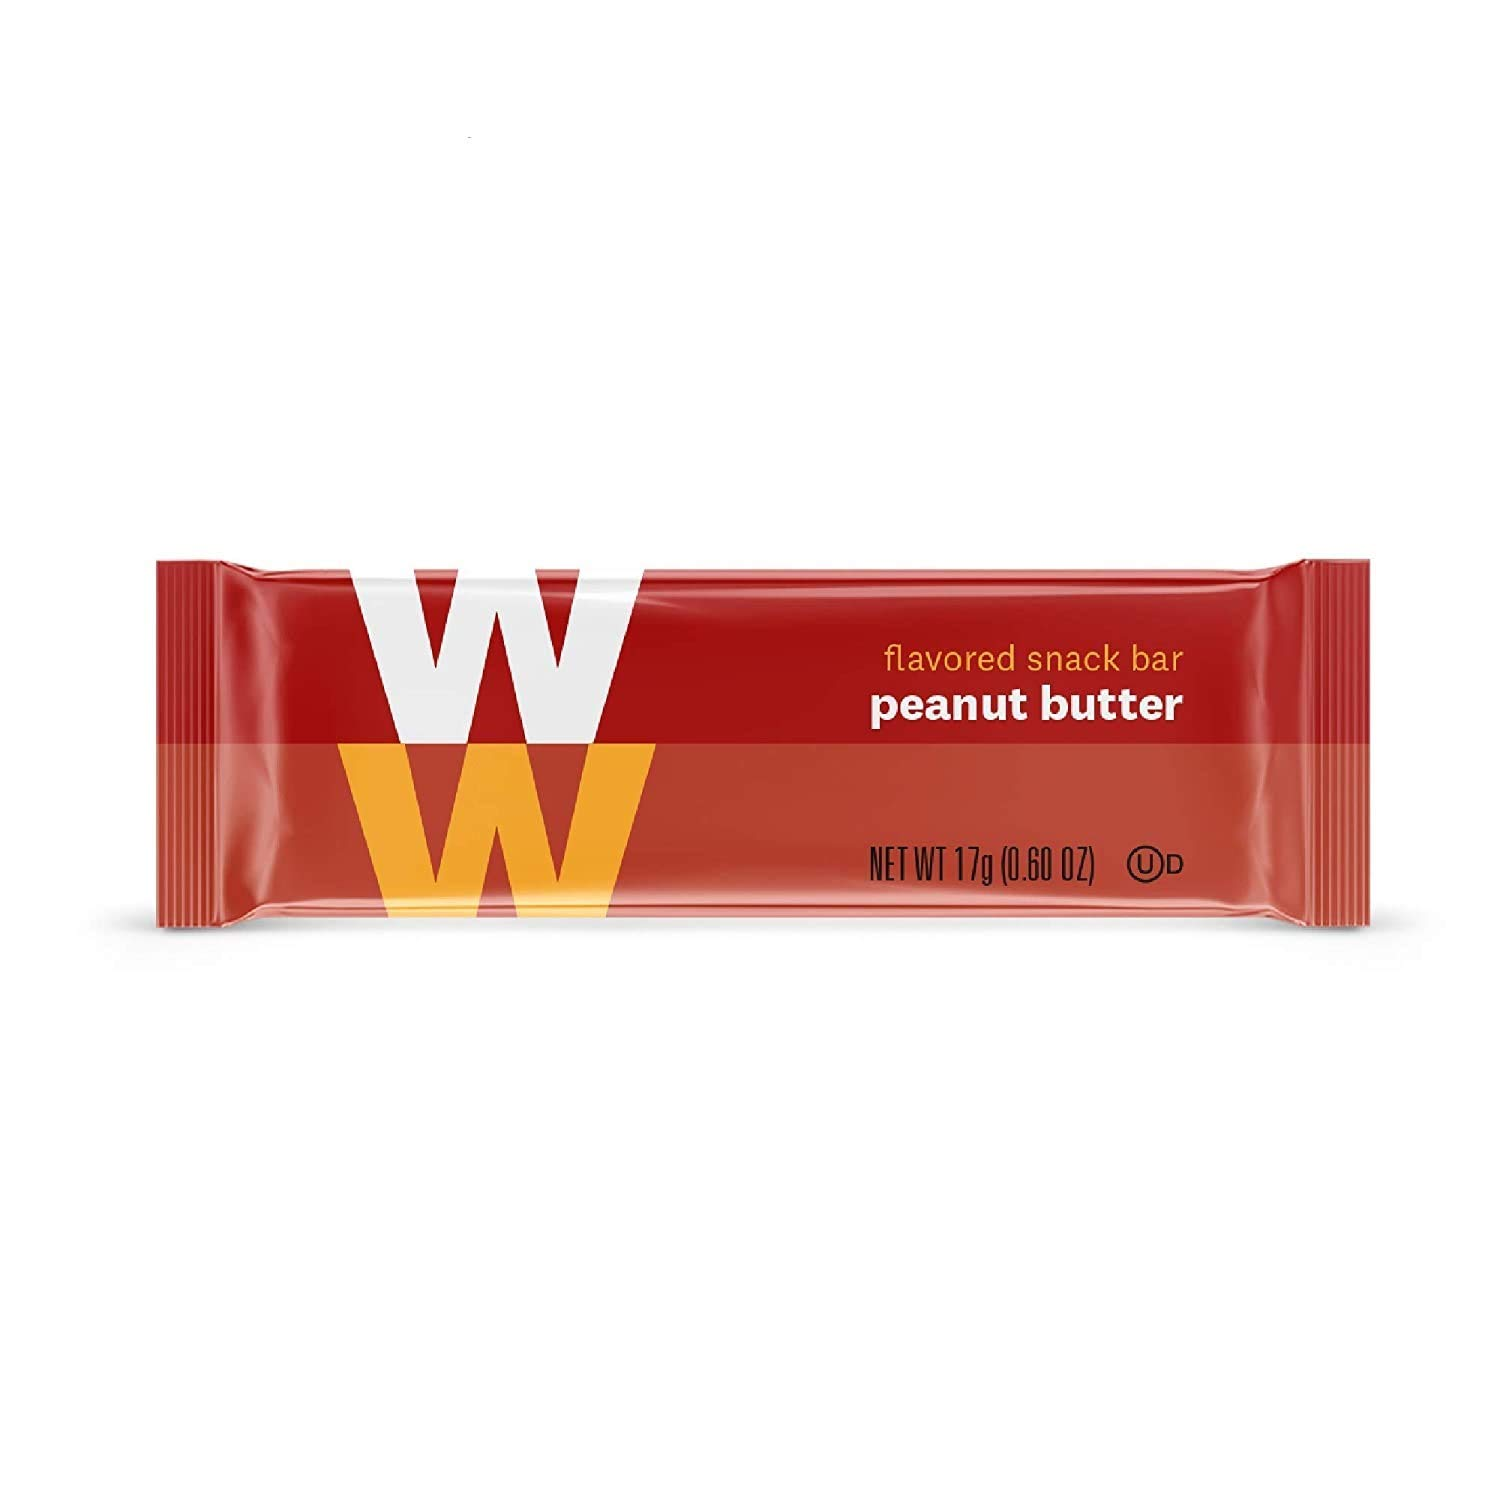 WW Peanut Butter Mini Bars - Snack Bar, 2 SmartPoints - 1 Box (24 Count Total) - Weight Watchers Reimagined